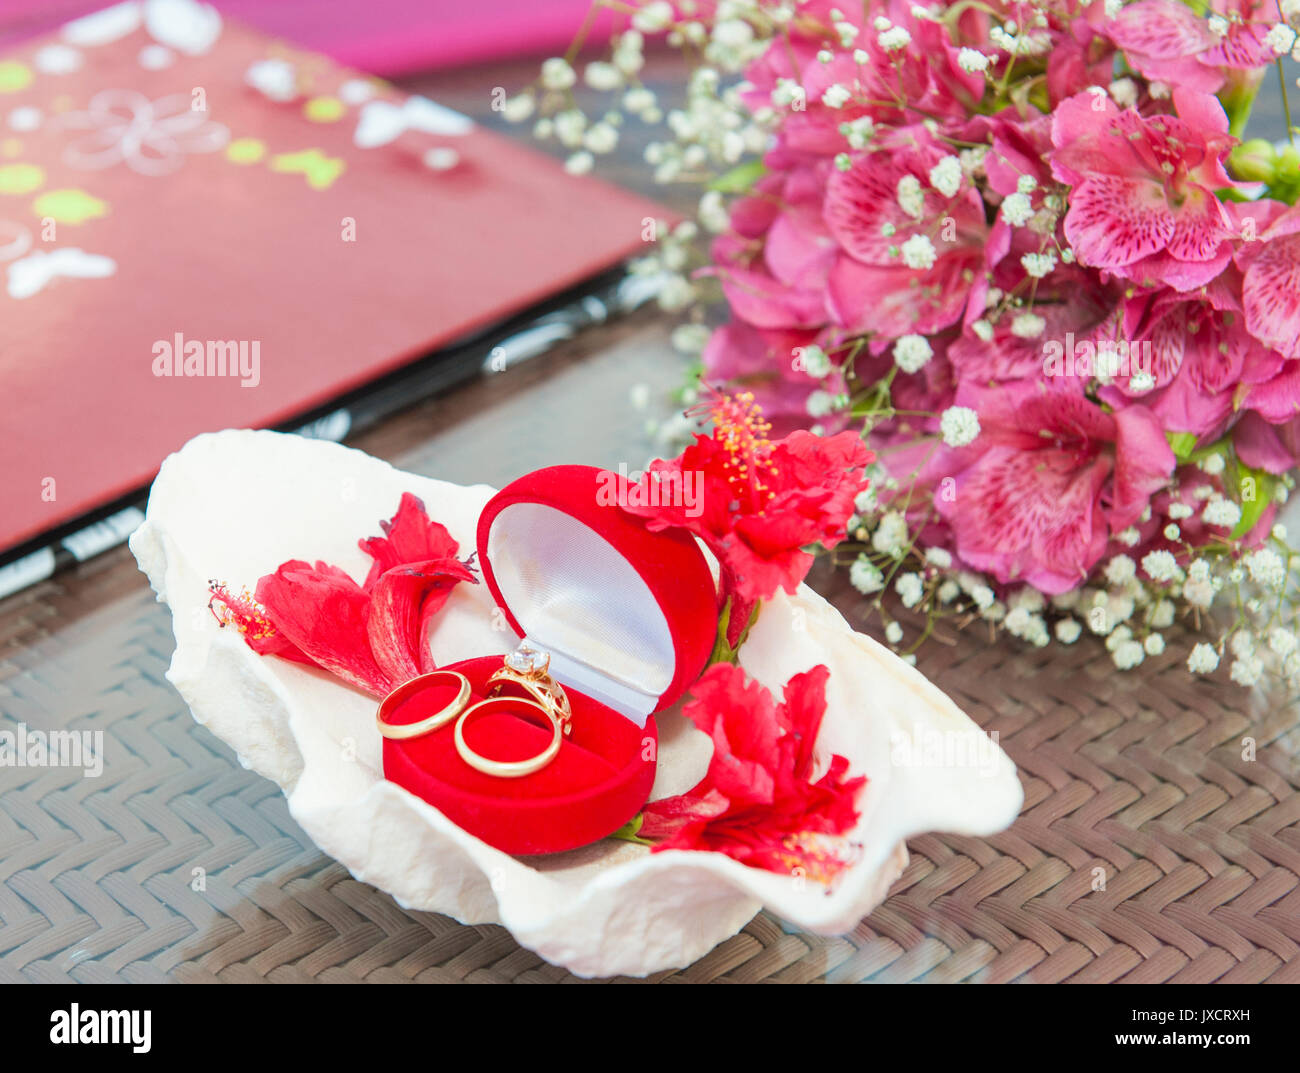 Wedding Bands Flowers Stock Photos & Wedding Bands Flowers Stock ...